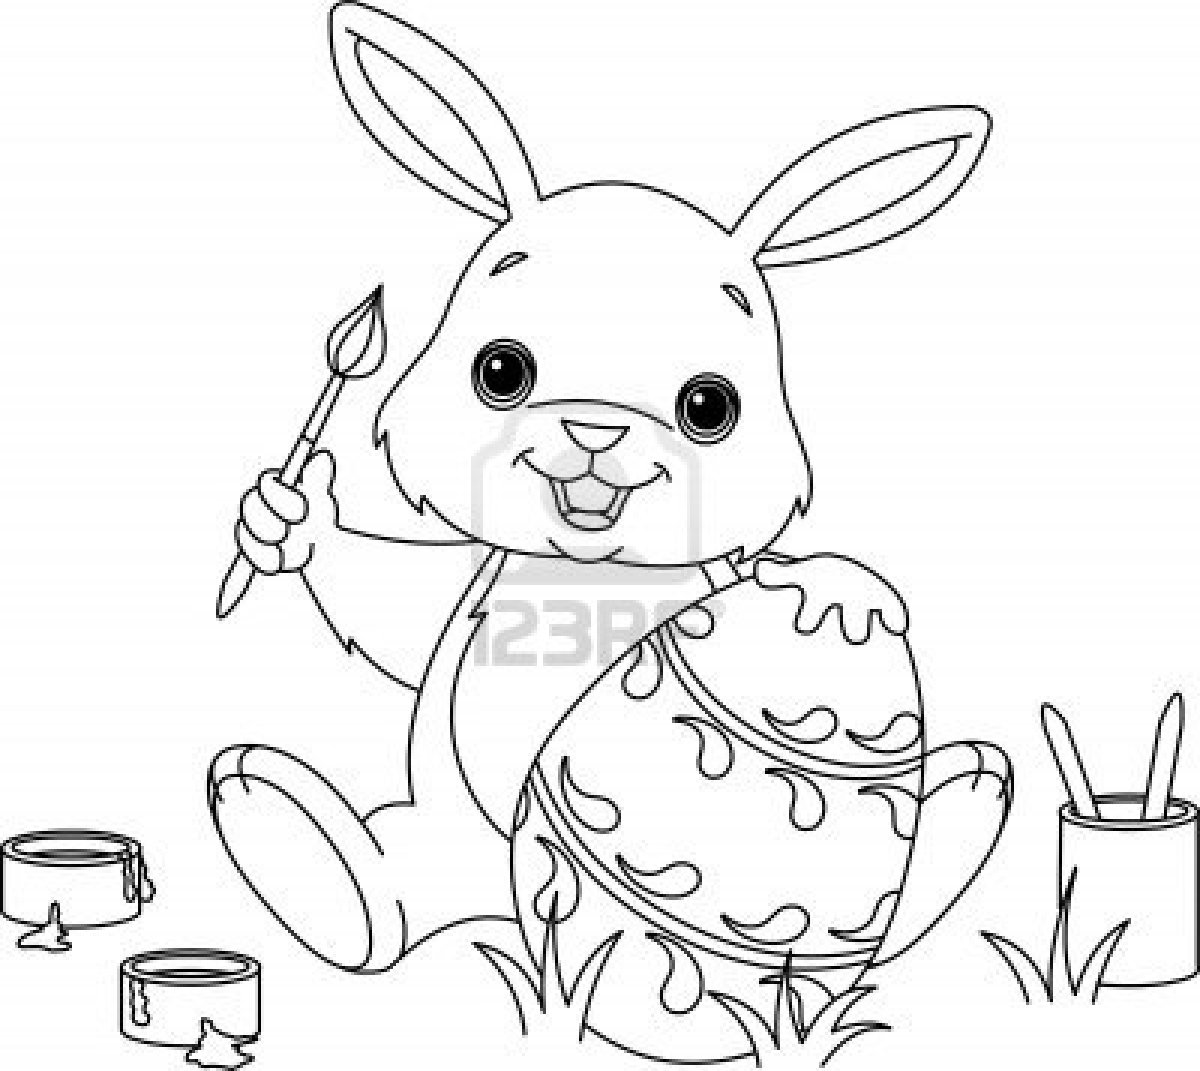 Easter Bunny Drawing at GetDrawings.com | Free for personal use ...